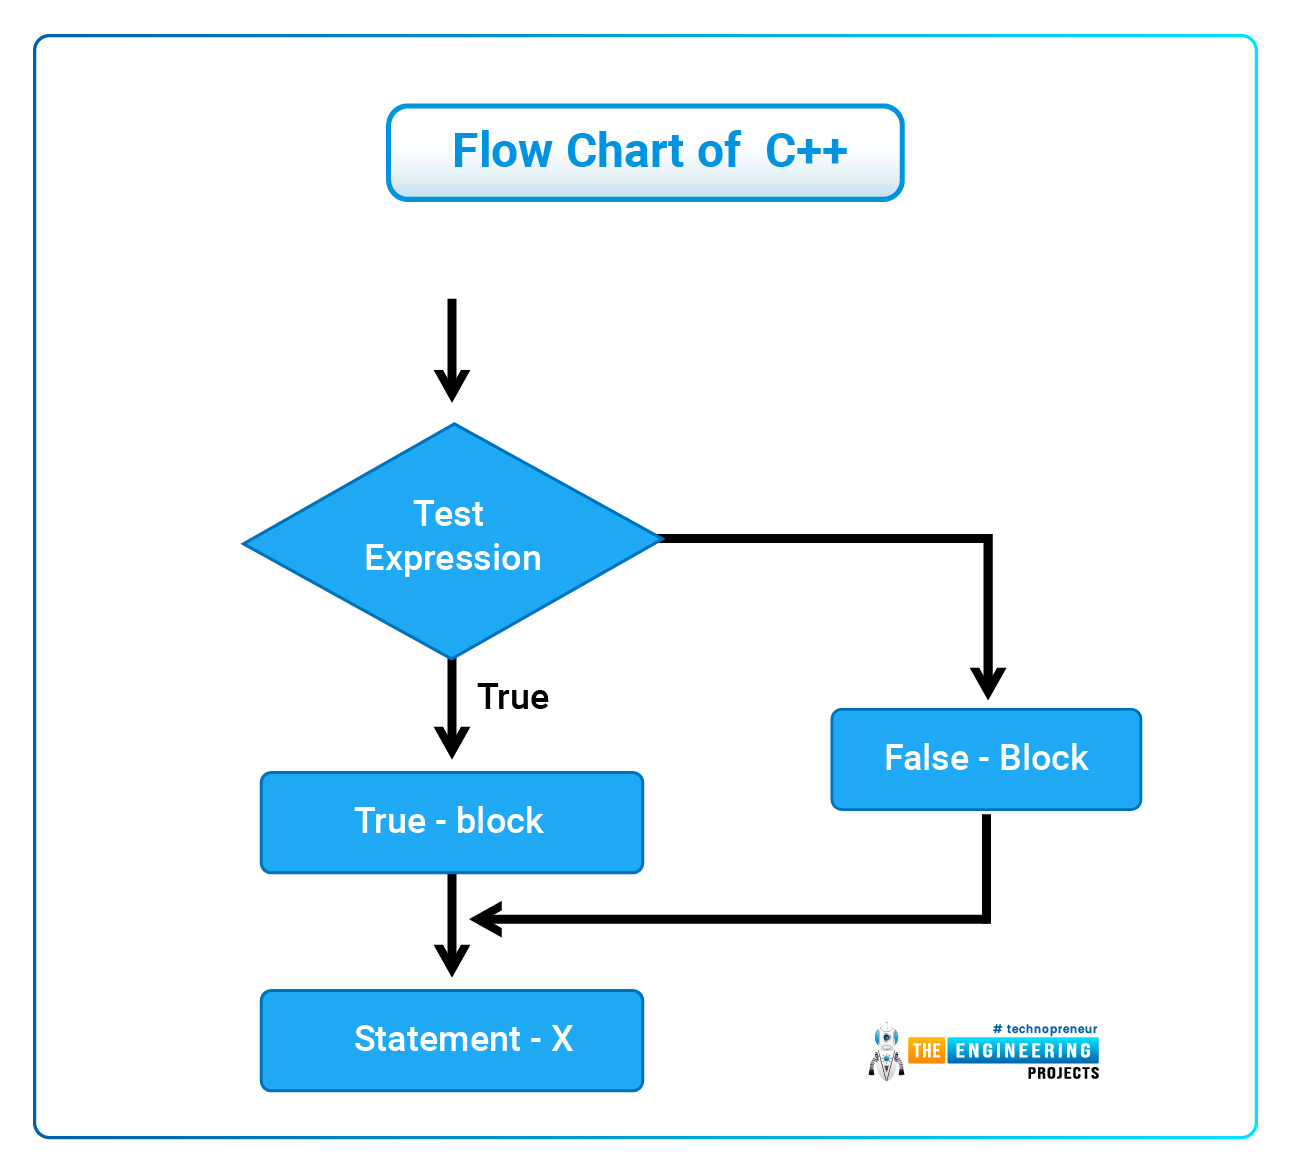 Uses of C++, Introduction to C++, Features of C++, Basic concepts of C++, syntax of C++, Comments in C++, Modifiers in C++